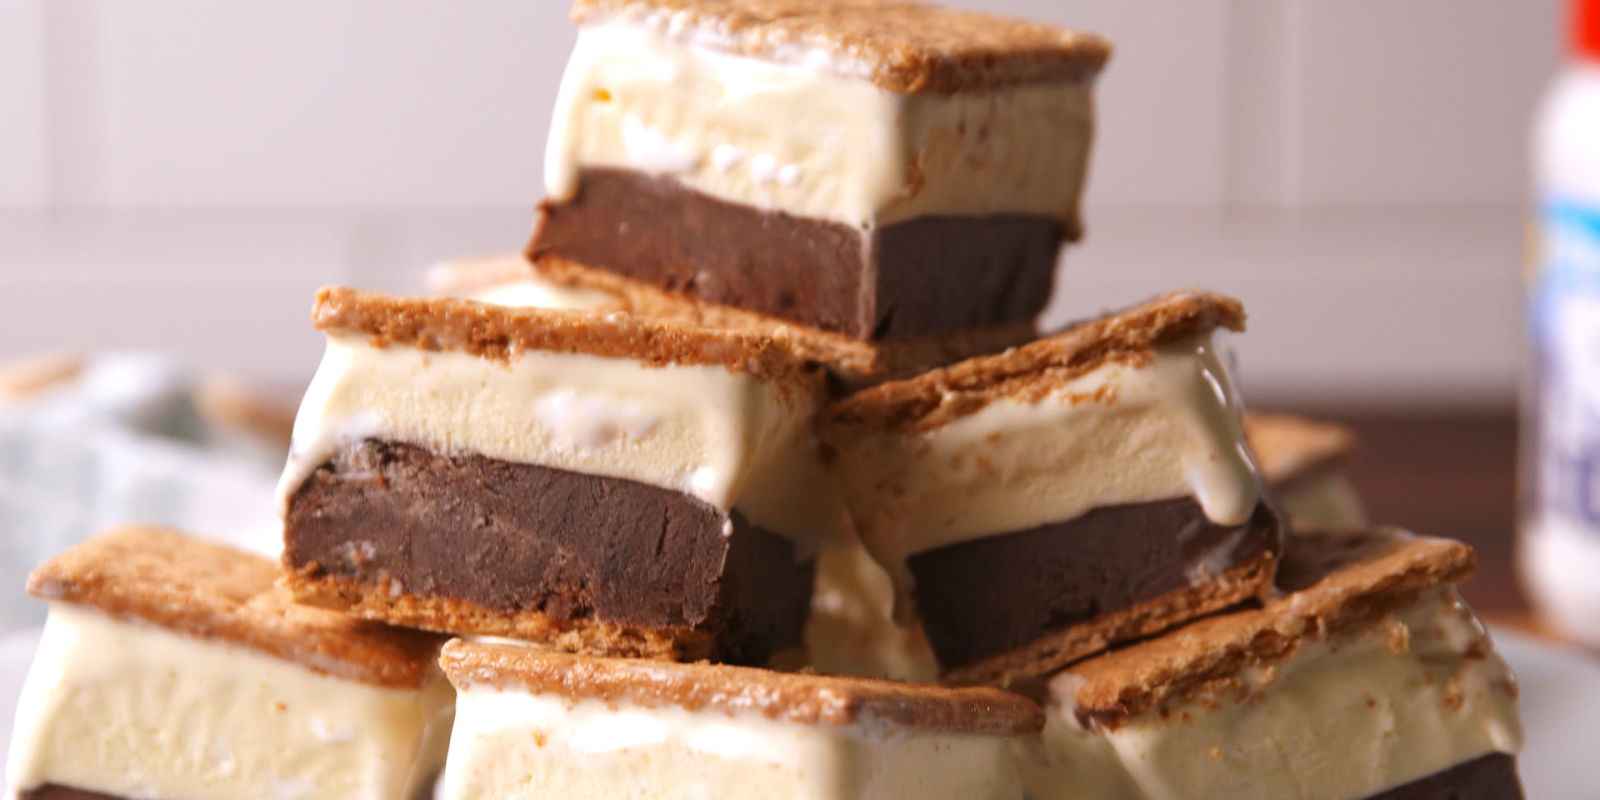 Frozen S'mores Are This Summer's Hottest Ice Cream Sandwiches